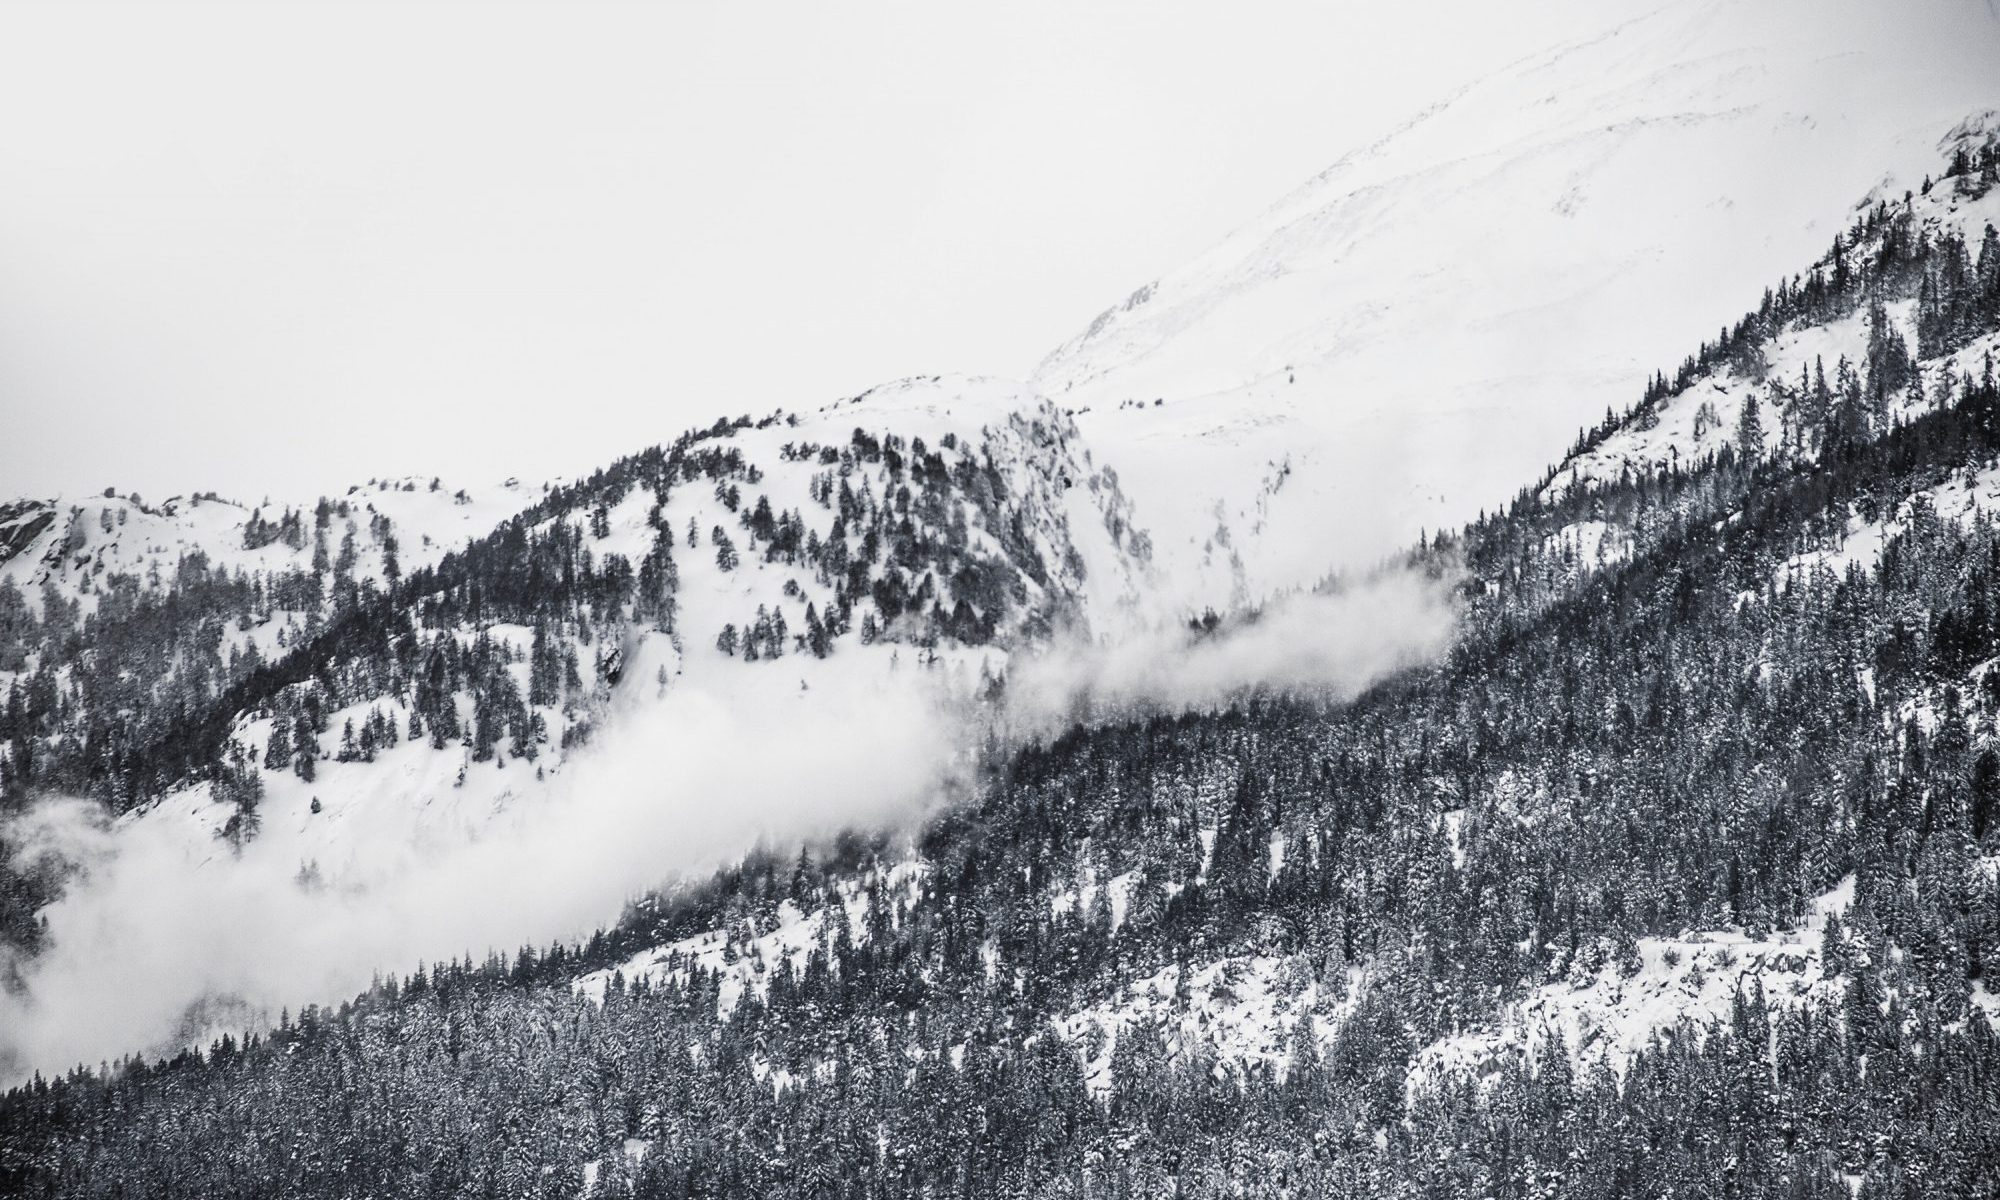 Avalanche danger - Photo by Caspar Rubin - Unsplash